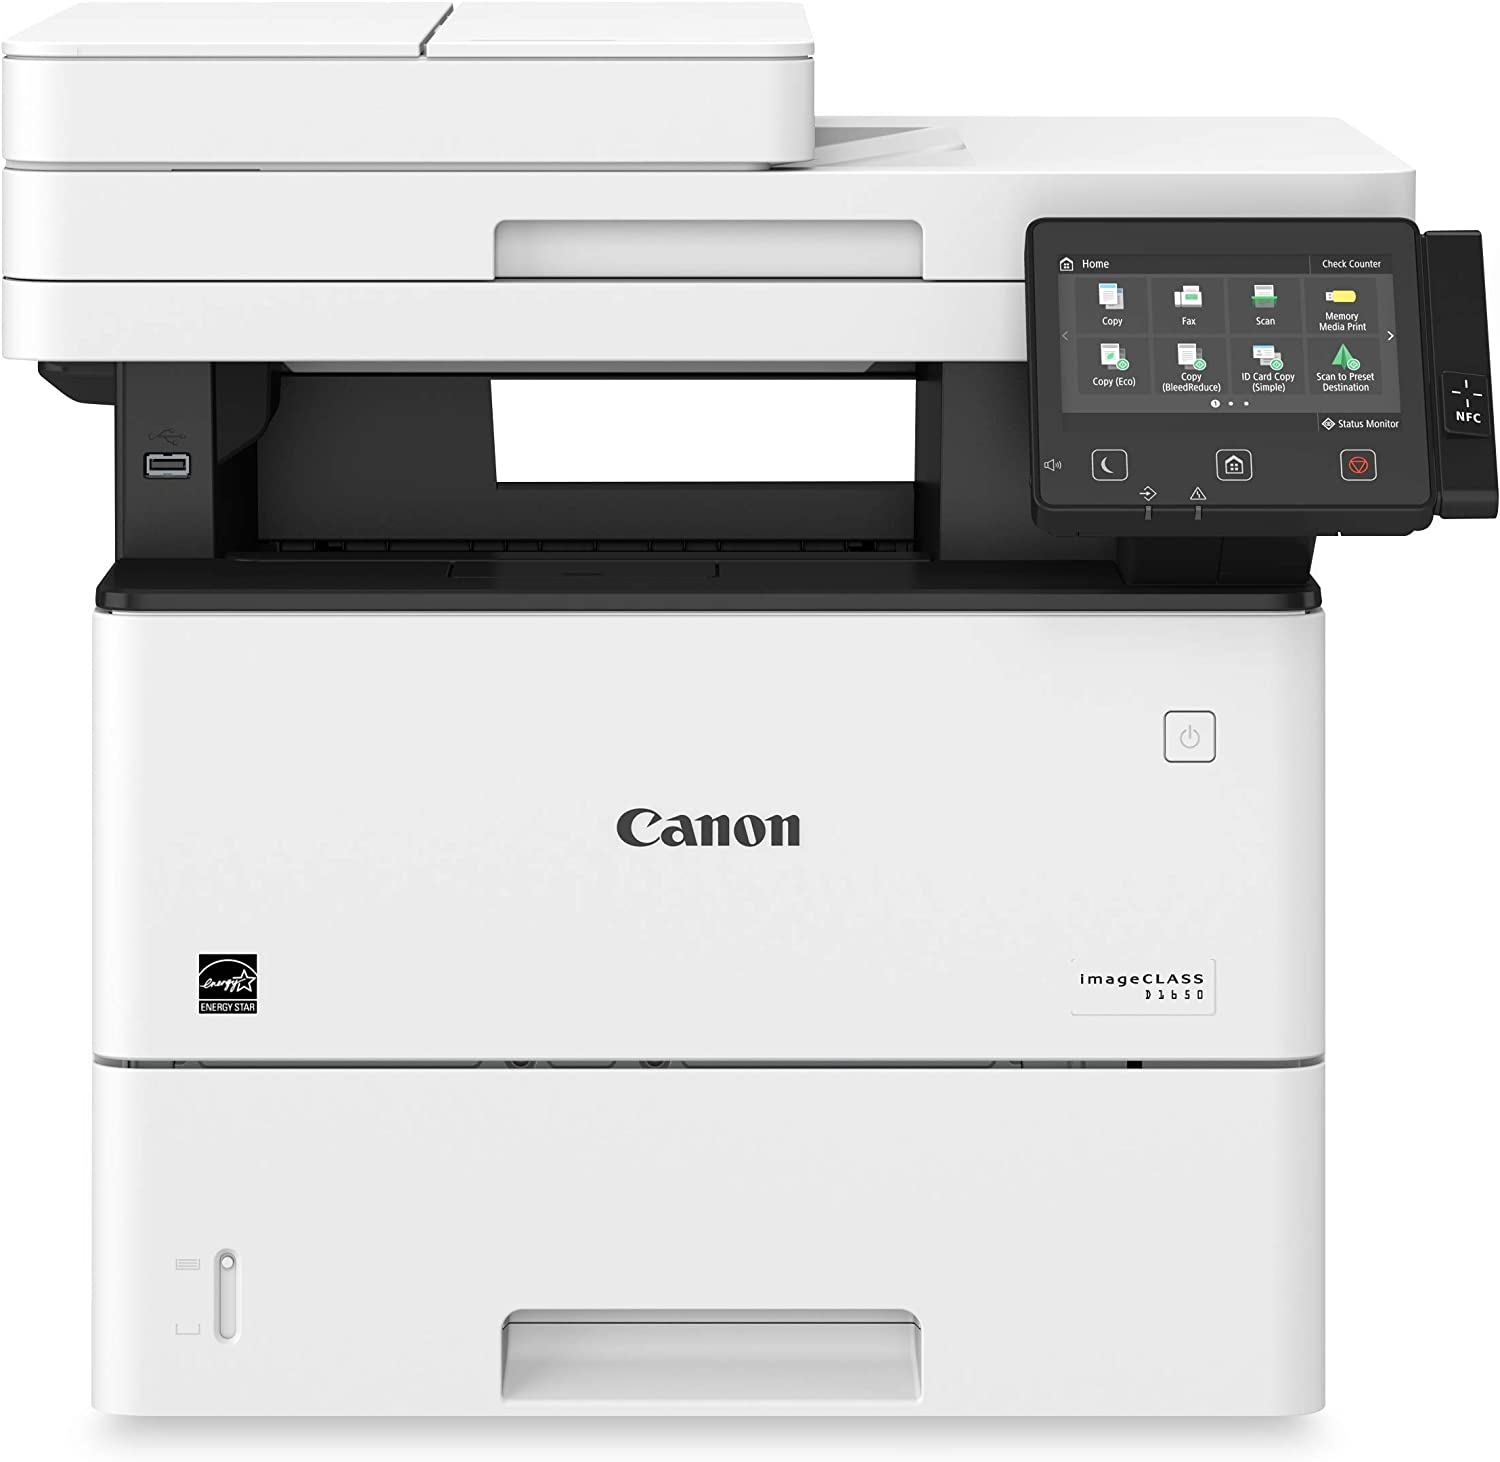 Canon imageCLASS D1650 (2223C023) All-in-One, Wireless Laser Printer with AirPrint, 45 Pages Per Minute and 3 Year Warranty, Amazon Dash Replenishment Ready